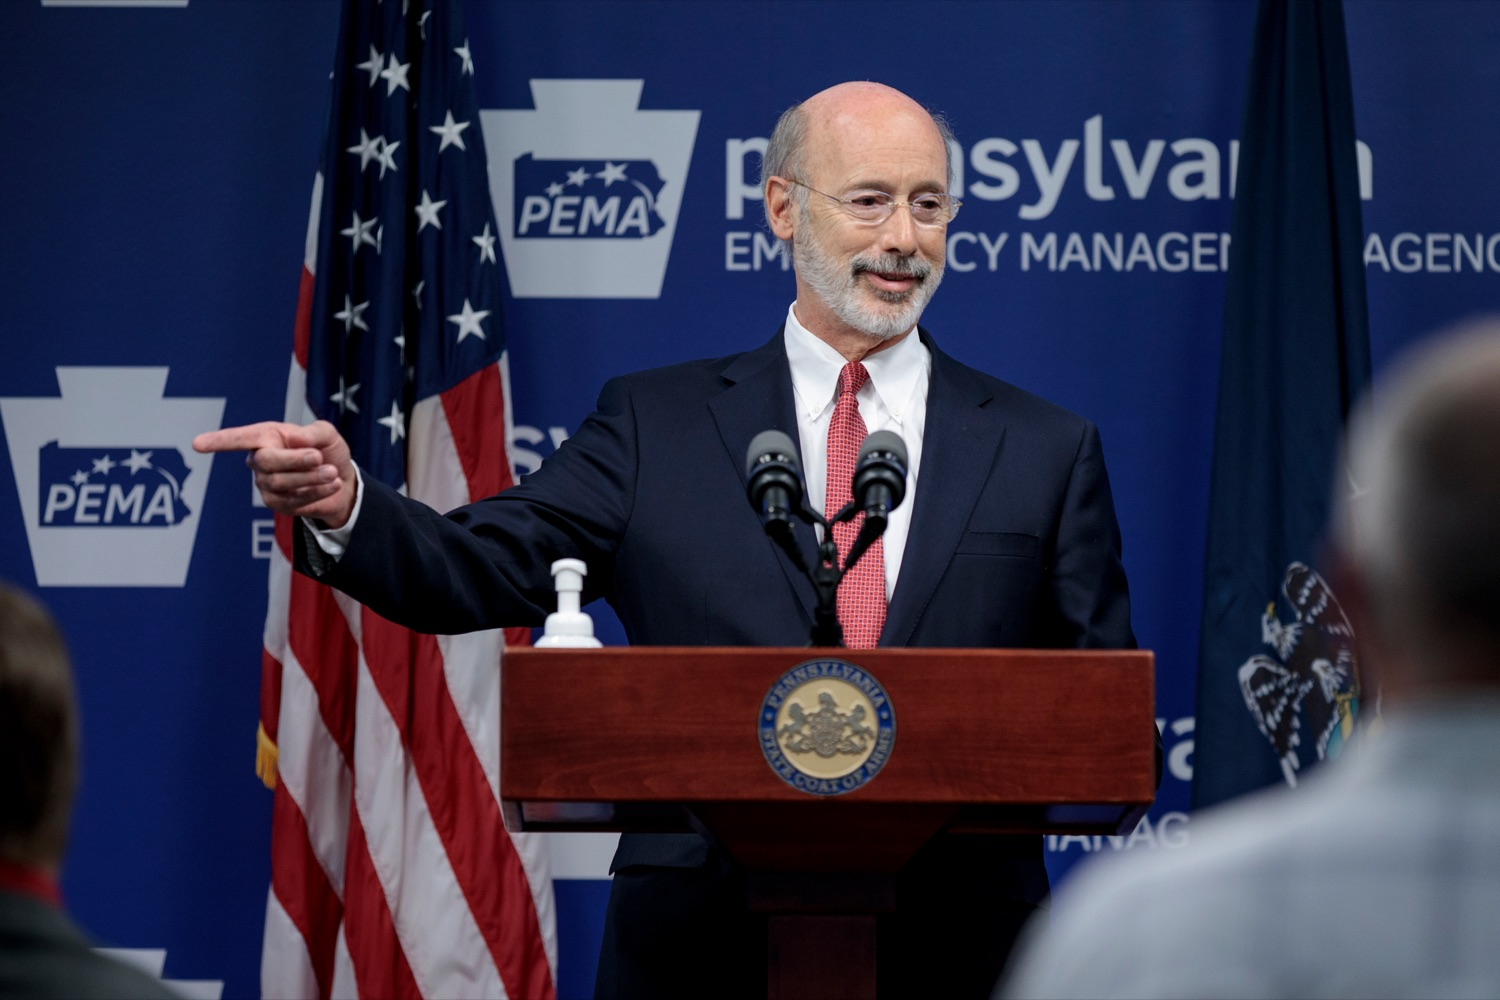 "<a href=""https://filesource.wostreaming.net/commonwealthofpa/photo/18078_GOV_Covid_Update_76846_NK_008.jpg"" target=""_blank"">⇣ Download Photo<br></a>Governor Tom Wolf speaks during a press conference addressing the 2019 Novel Coronavirus (COVID-19) in Pennsylvania, inside PEMA headquarters on Wednesday, June 10, 2020."